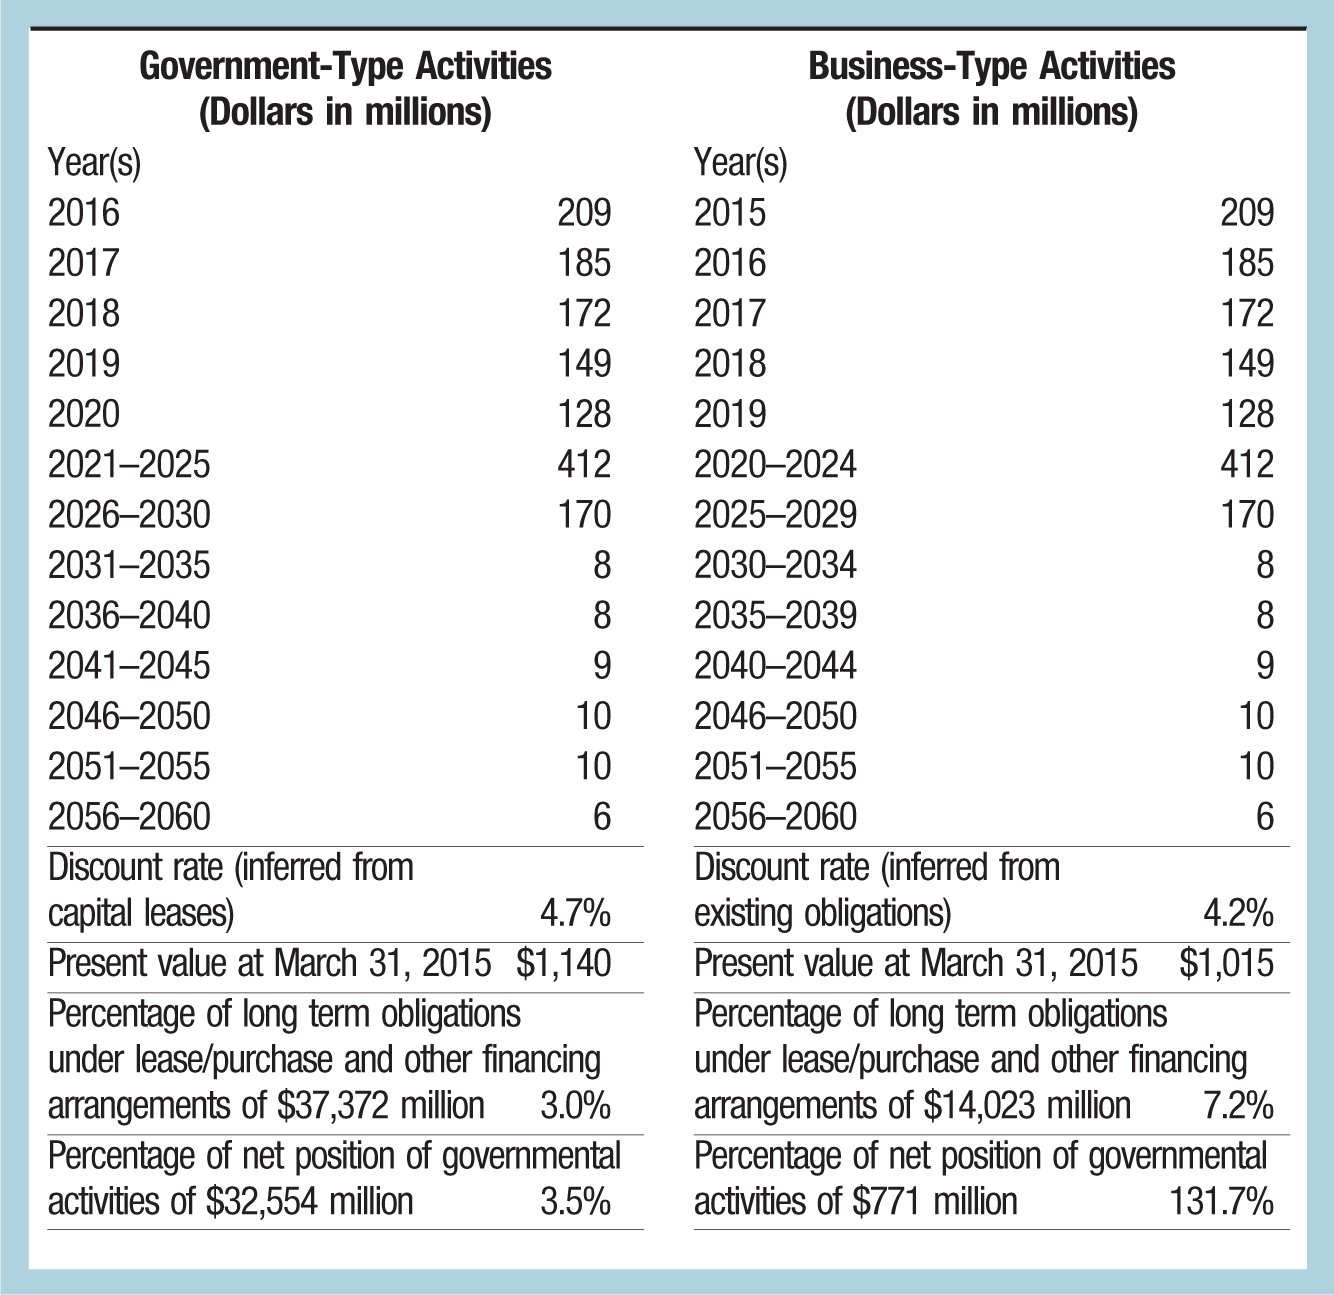 Government-Type Activities (Dollars in millions); Business-Type Activities (Dollars in millions) Year(s); Year(s) 2016; 209; 2015; 209 2017; 185; 2016; 185 2018; 172; 2017; 172 2019; 149; 2018; 149 2020; 128; 2019; 128 2021–2025; 412; 2020–2024; 412 2026–2030; 170; 2025–2029; 170 2031–2035; 8; 2030–2034; 8 2036–2040; 8; 2035–2039; 8 2041–2045; 9; 2040–2044; 9 2046–2050; 10; 2046–2050; 10 2051–2055; 10; 2051–2055; 10 2056–2060; 6; 2056–2060; 6 Discount rate (inferred from capital leases); 4.7%; Discount rate (inferred from existing obligations); 4.2% Present value at March 31, 2015 $1,140; Present value at March 31, 2015; $1,015 Percentage of long term obligations under lease/purchase and other financing arrangements of $37,372 million 3.0%; Percentage of long term obligations under lease/purchase and other financing arrangements of $14,023 million 7.2% Percentage of net position of governmental activities of $32,554 million 3.5%; Percentage of net position of governmental activities of $771 million 131.7%